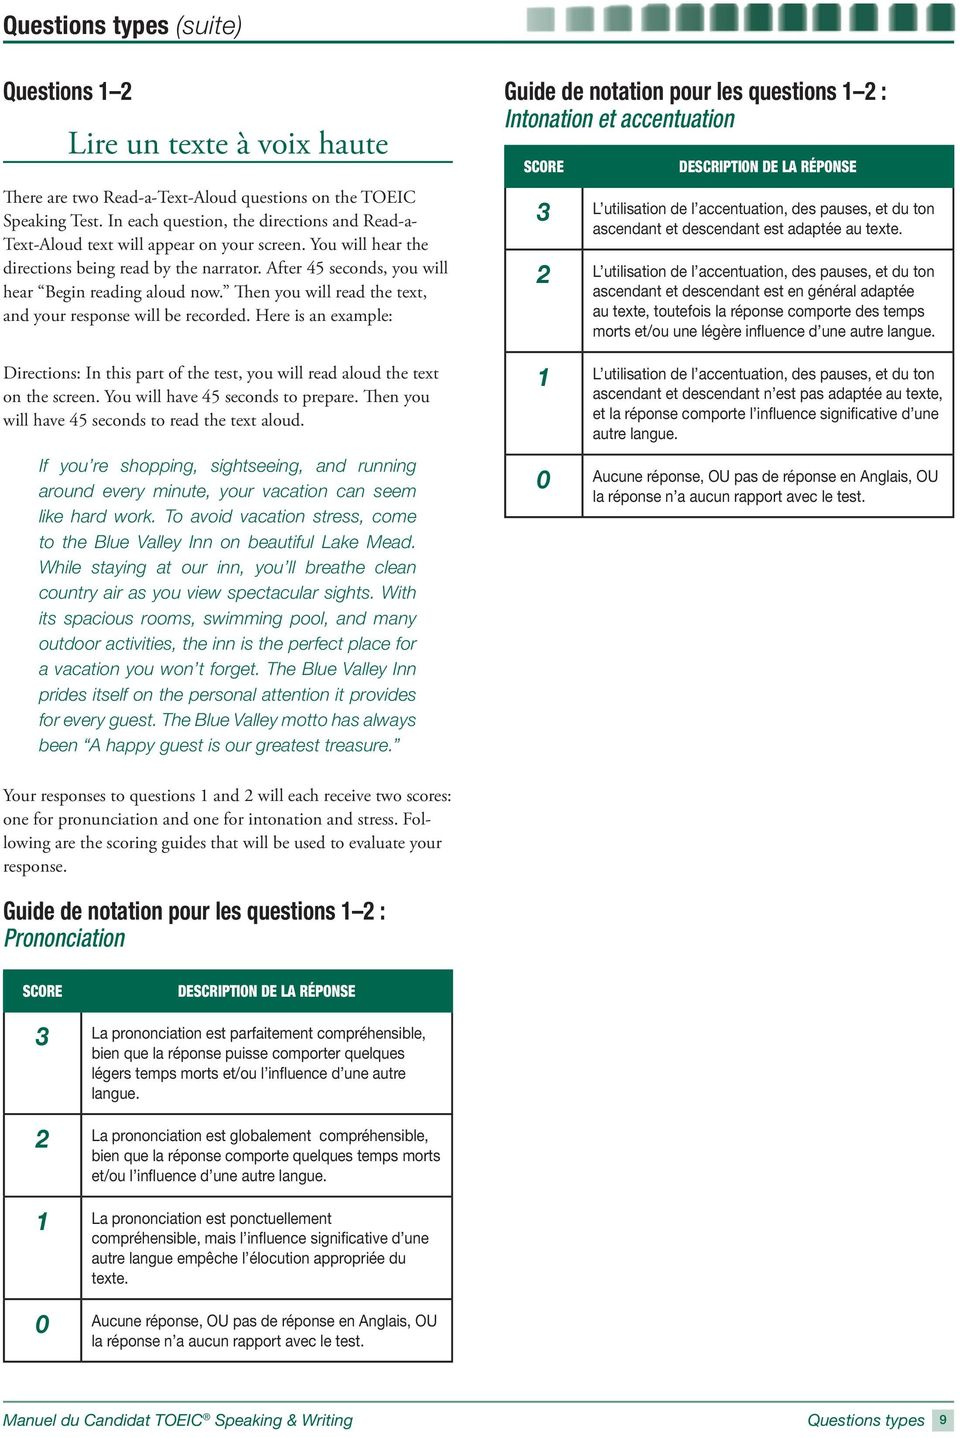 toeic writing and speaking test example